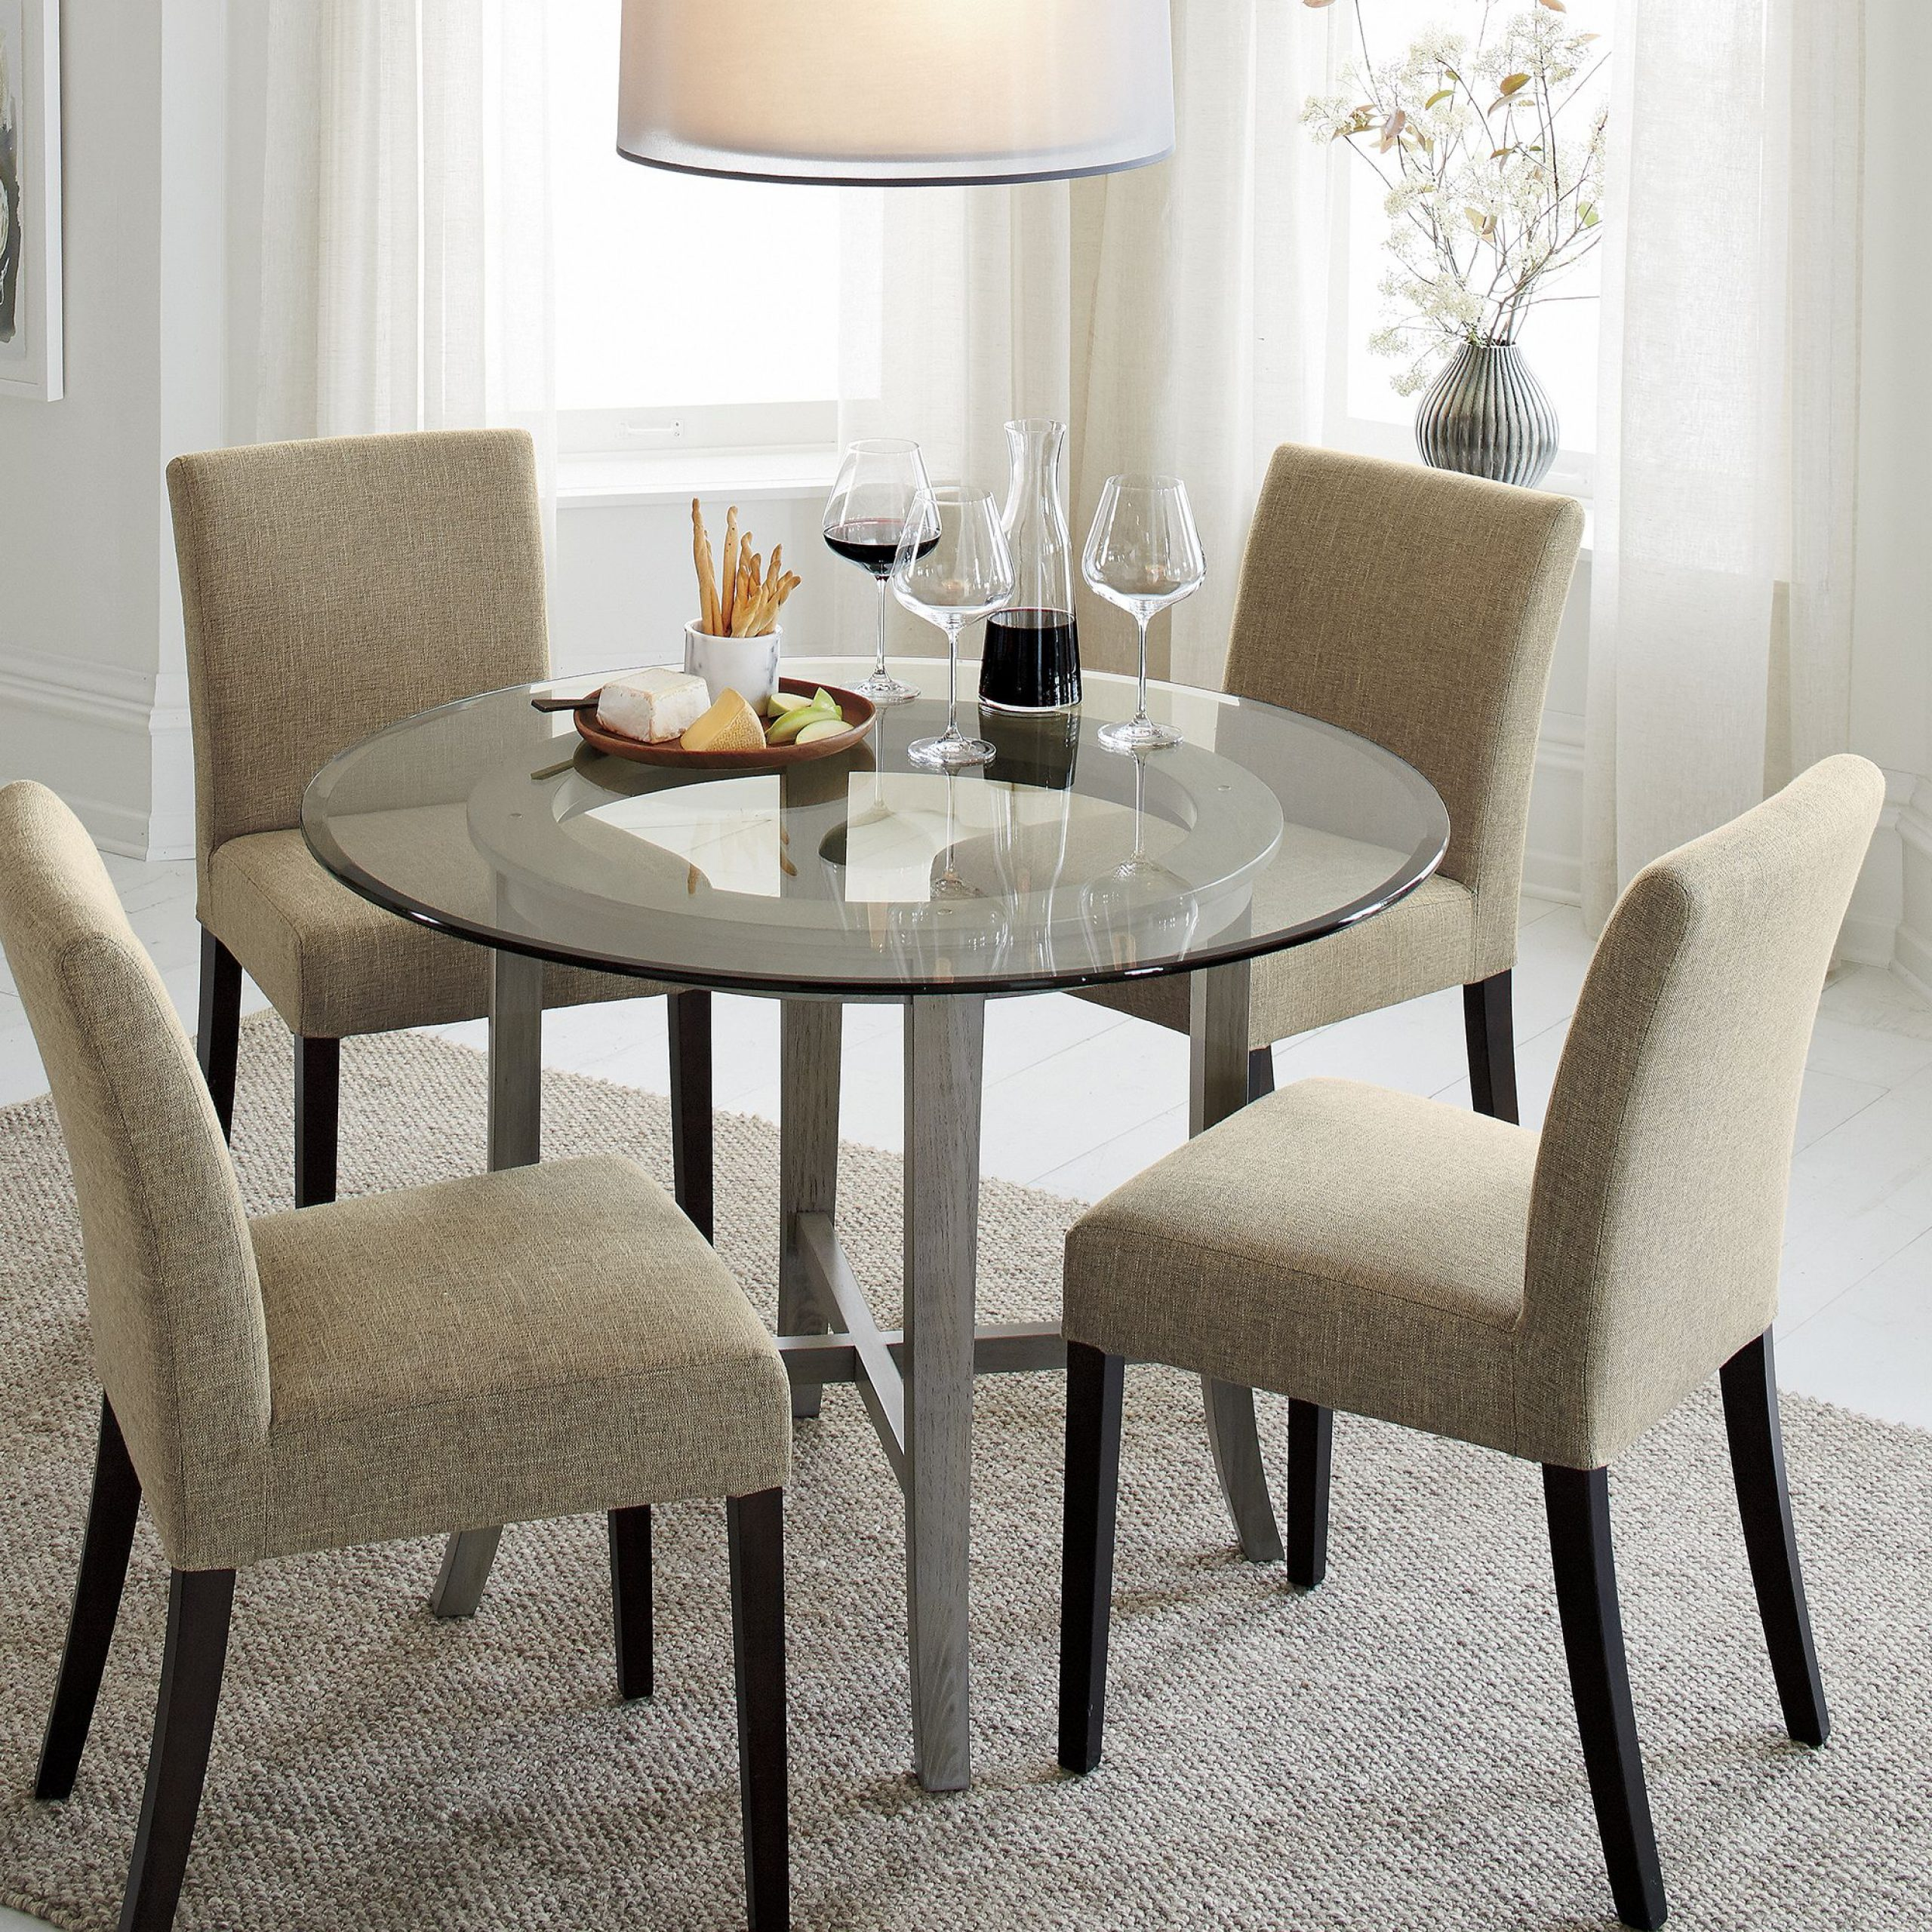 """Well Known Halo Grey Round Dining Table With 42"""" Glass Top + Reviews For Round Dining Tables With Glass Top (View 24 of 30)"""